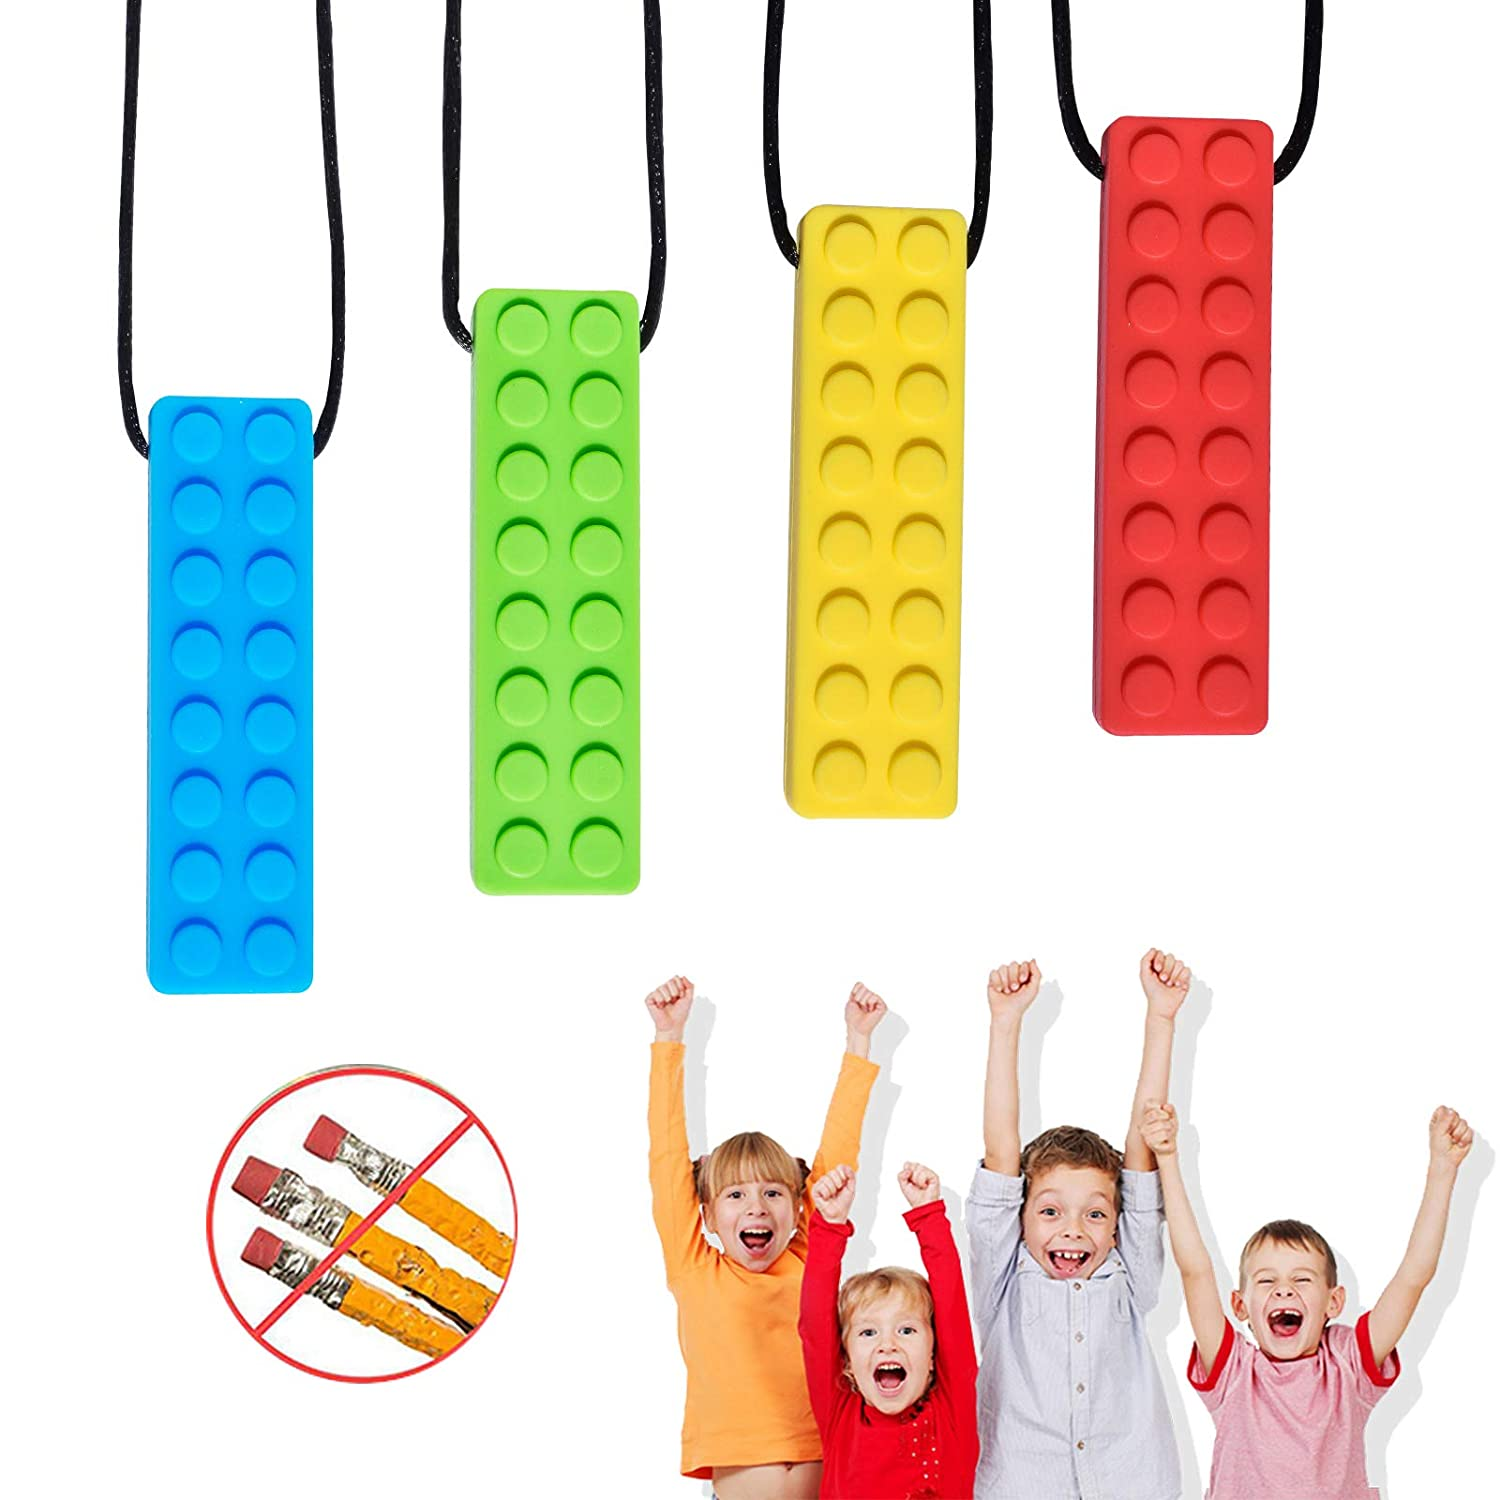 Chew Necklace, Autism Chew Necklace (4PCS), Sensory Necklace Set, Chew Necklaces for Sensory Kids, for Biting Needs, Autistic, ADHD, Oral Motor (100% Food Grade Silicone), for Boys and Girls